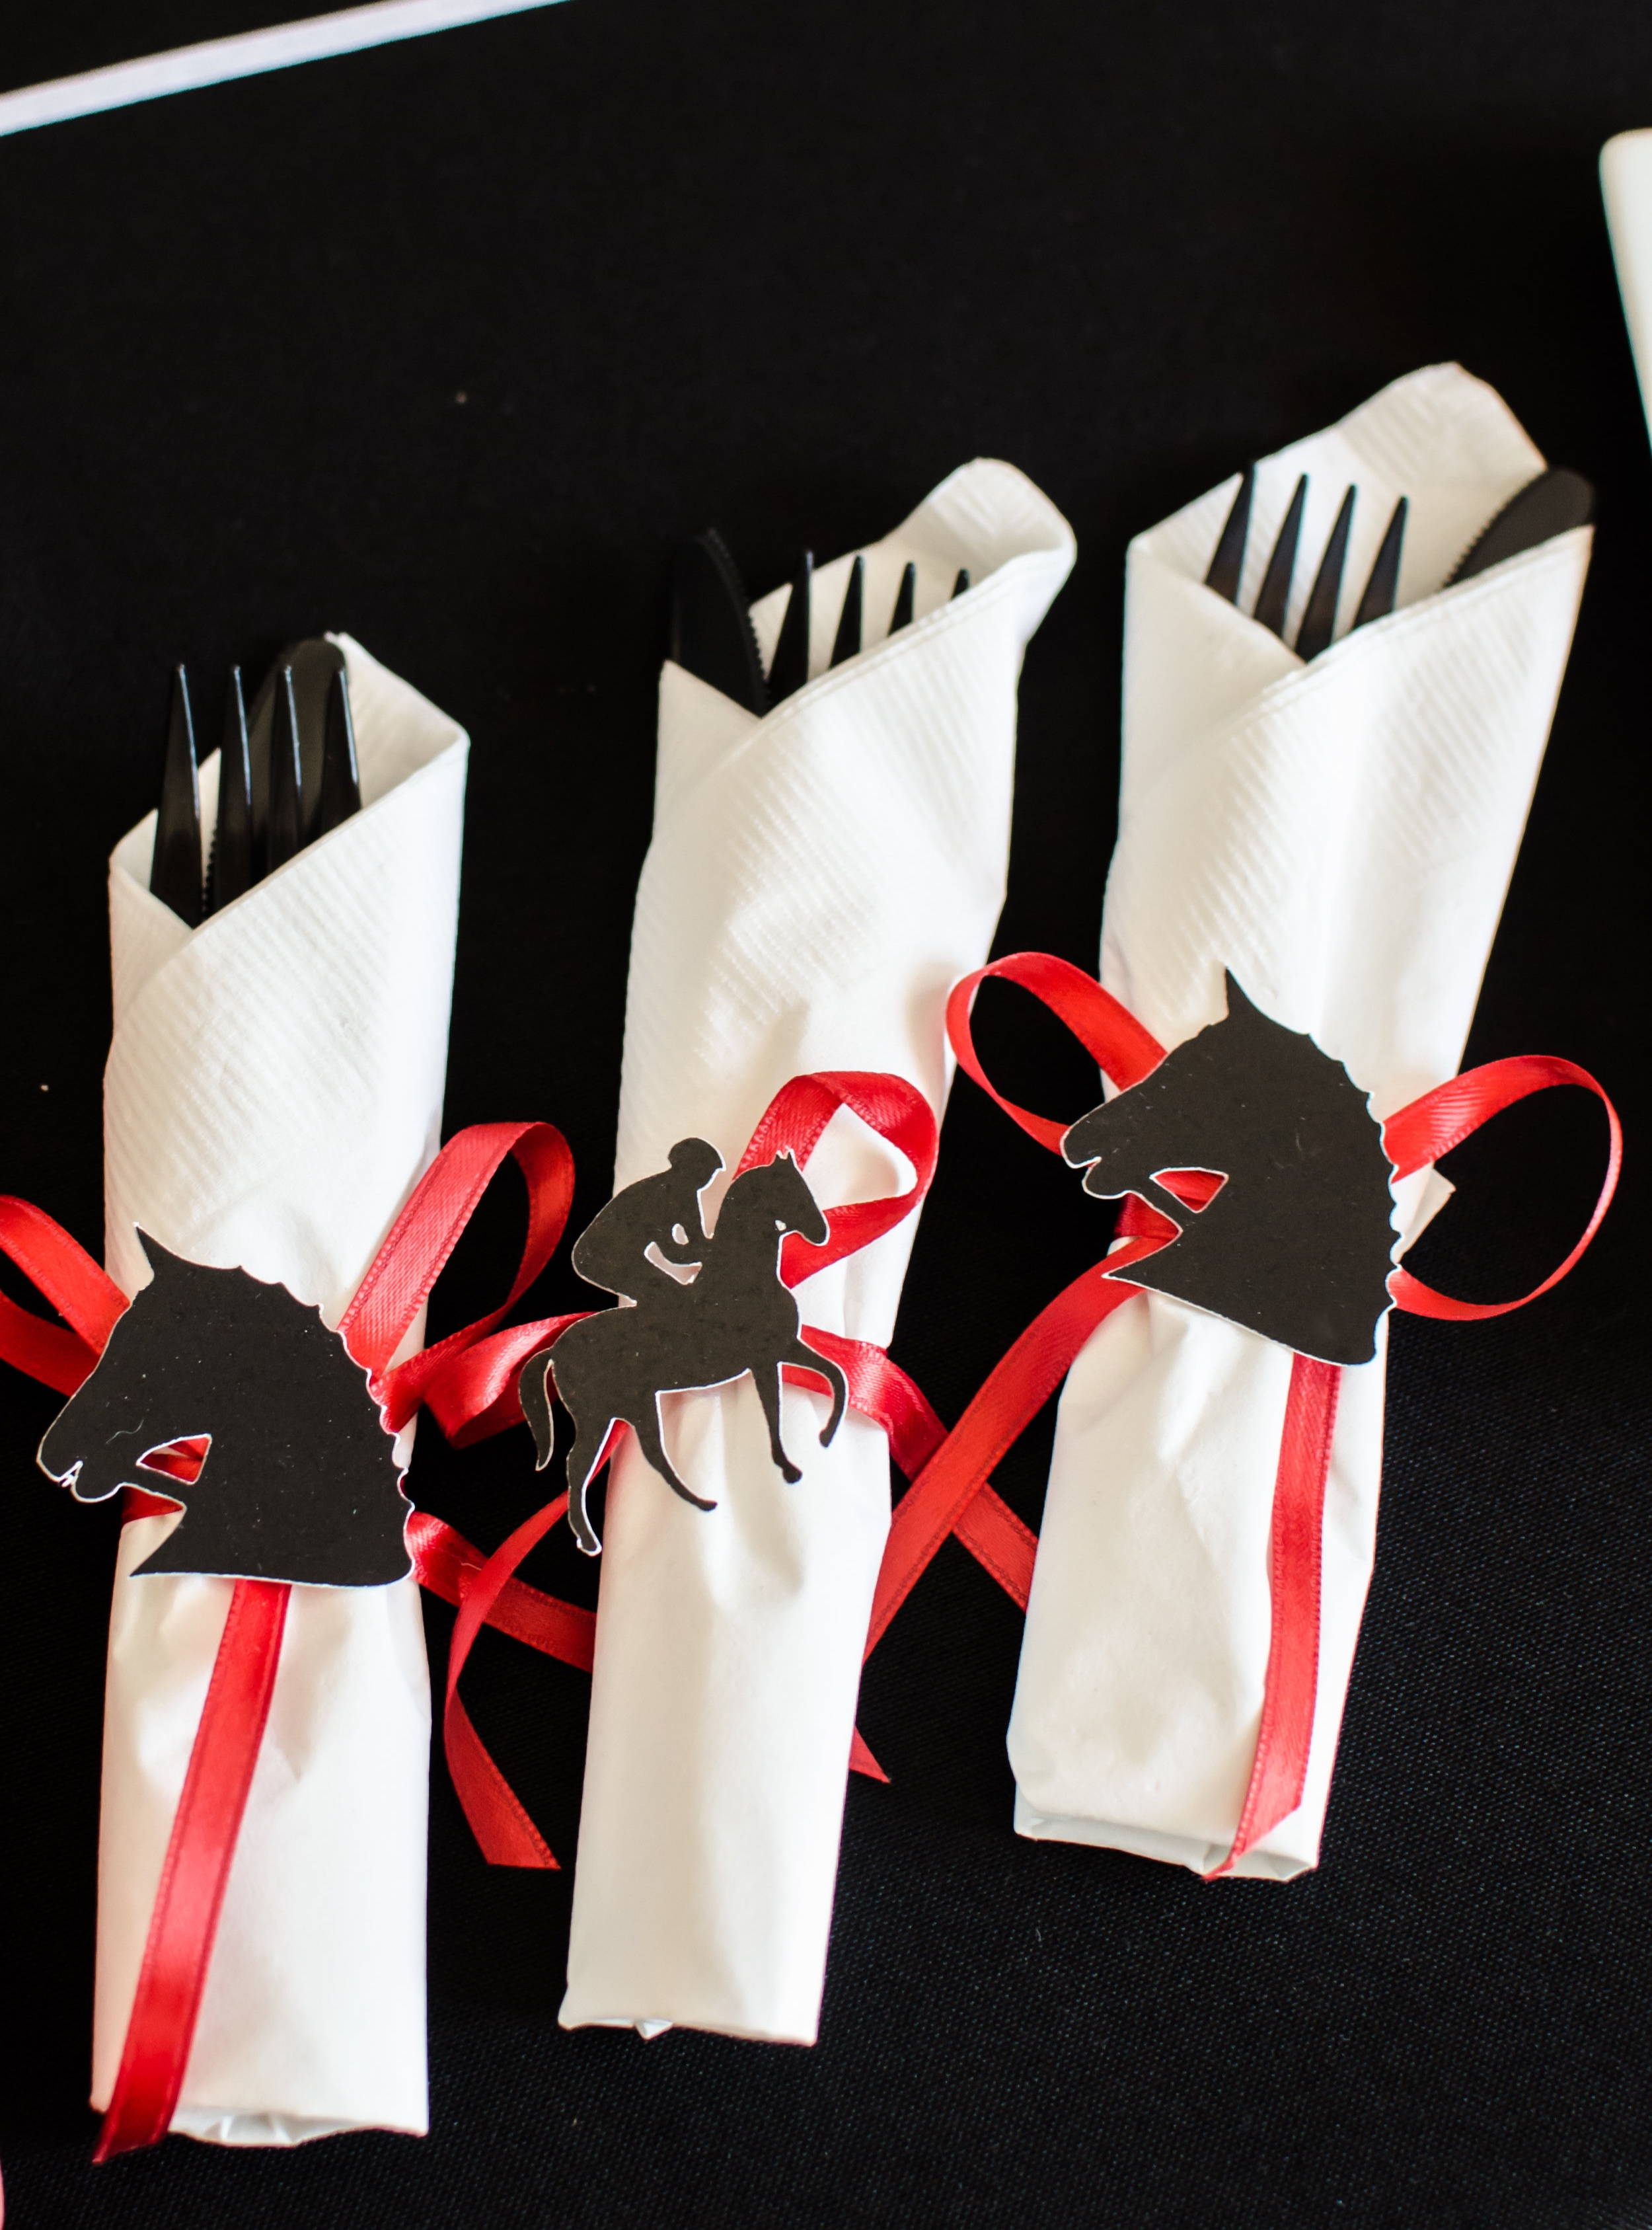 Cute Kentucky Derby themed party cut outs are perfect added to napkins that are tied together with red ribbon. Styling by Mint Event Design www.minteventdesign.com